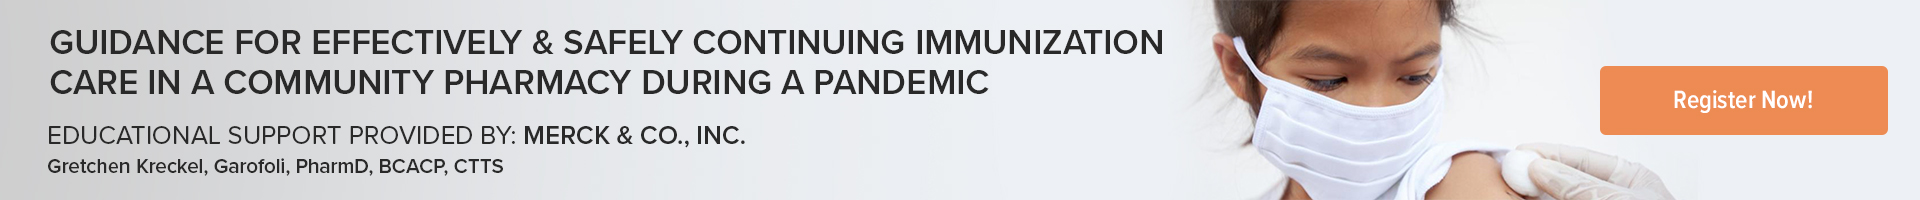 community pharmacy pandemic